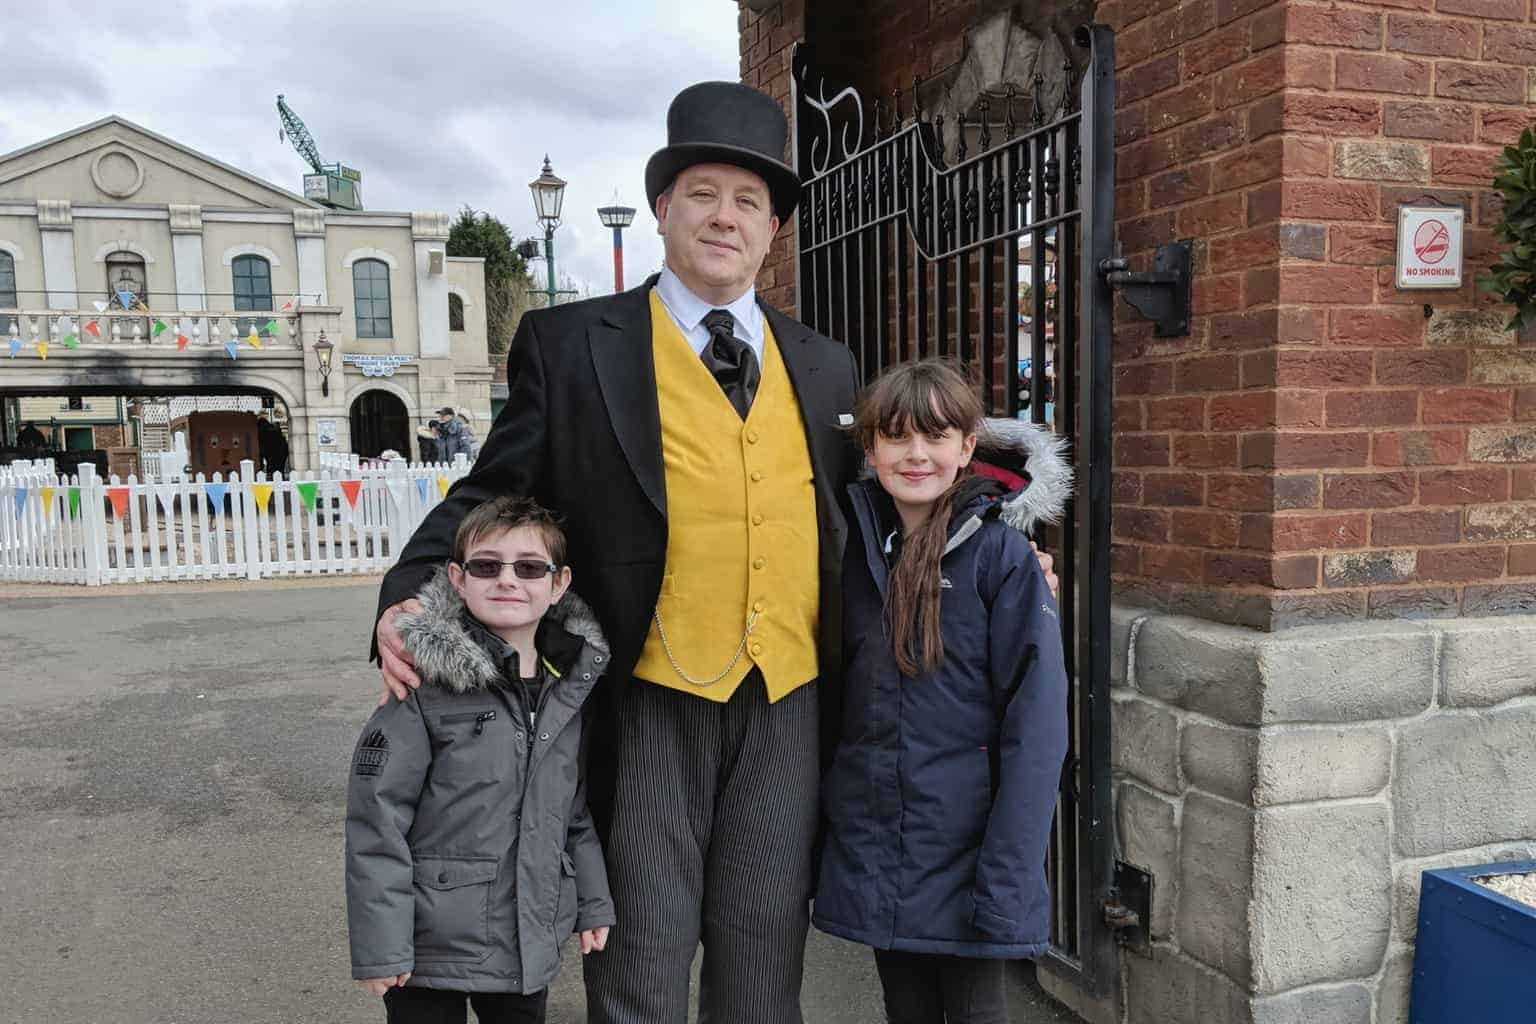 A Postcard From… The Fat Controller at Drayton Manor